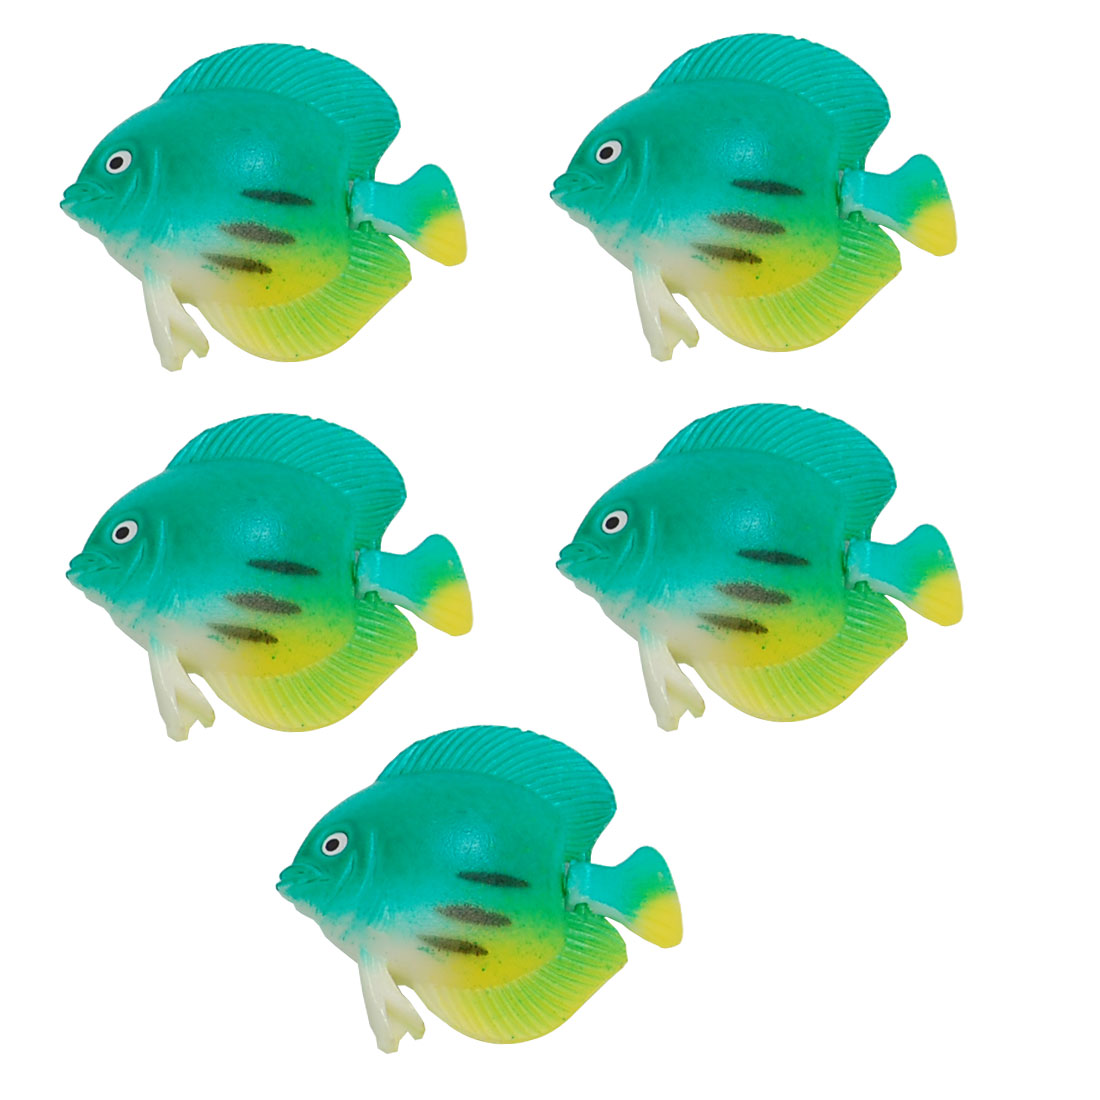 Green Plastic Floating Decorative Aquarium Fish